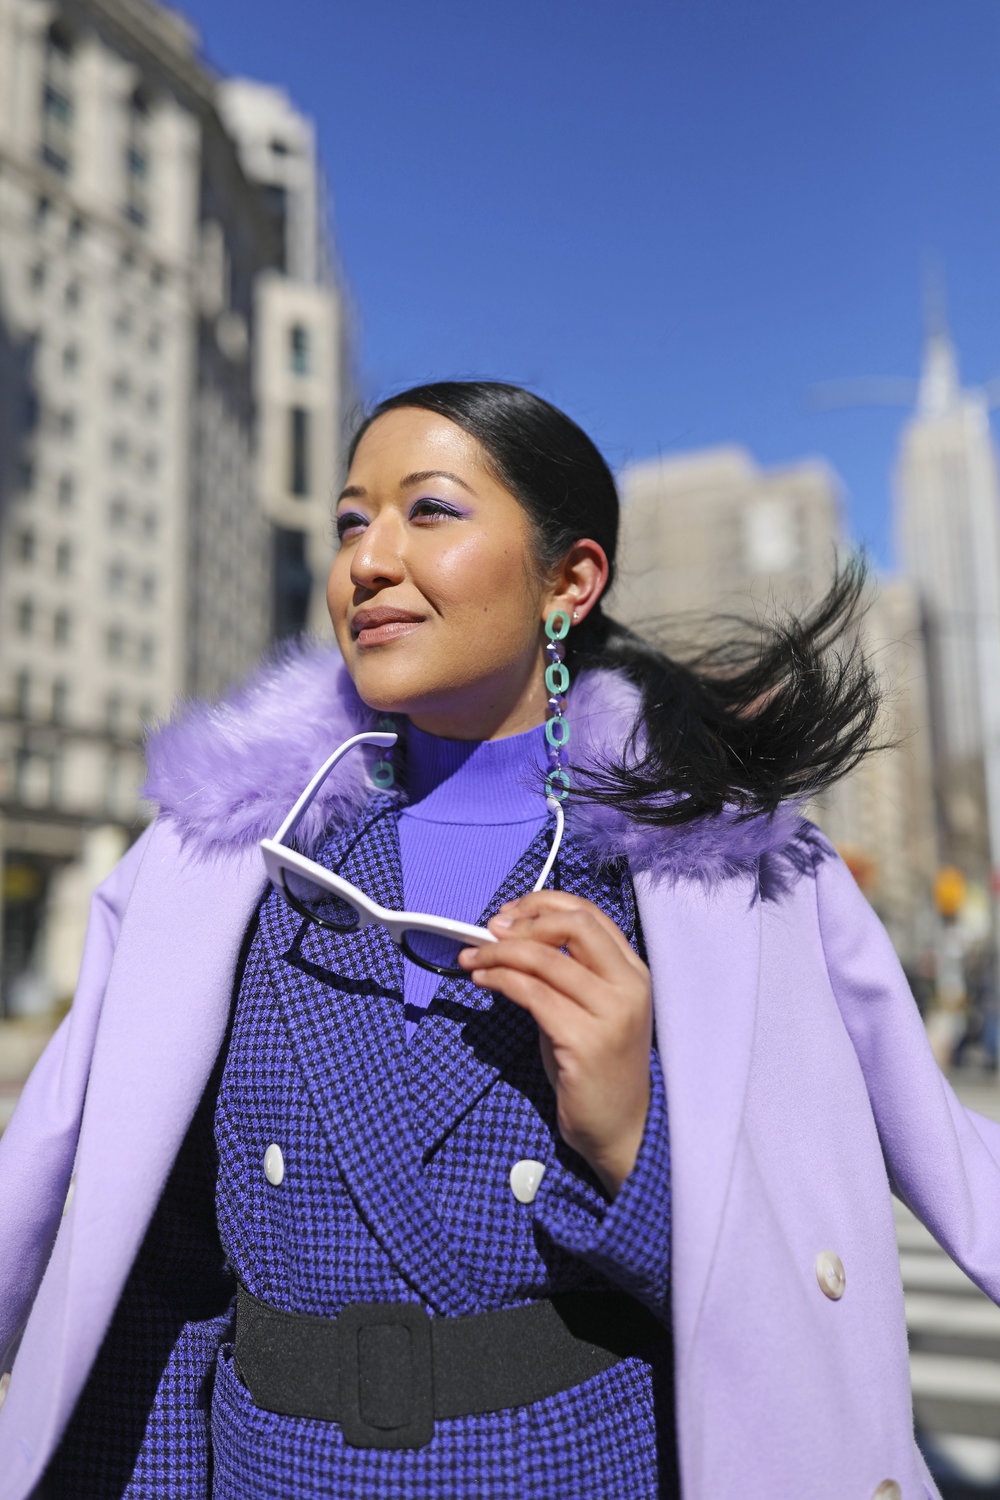 NYFW Outfit Purple Suit1.jpg